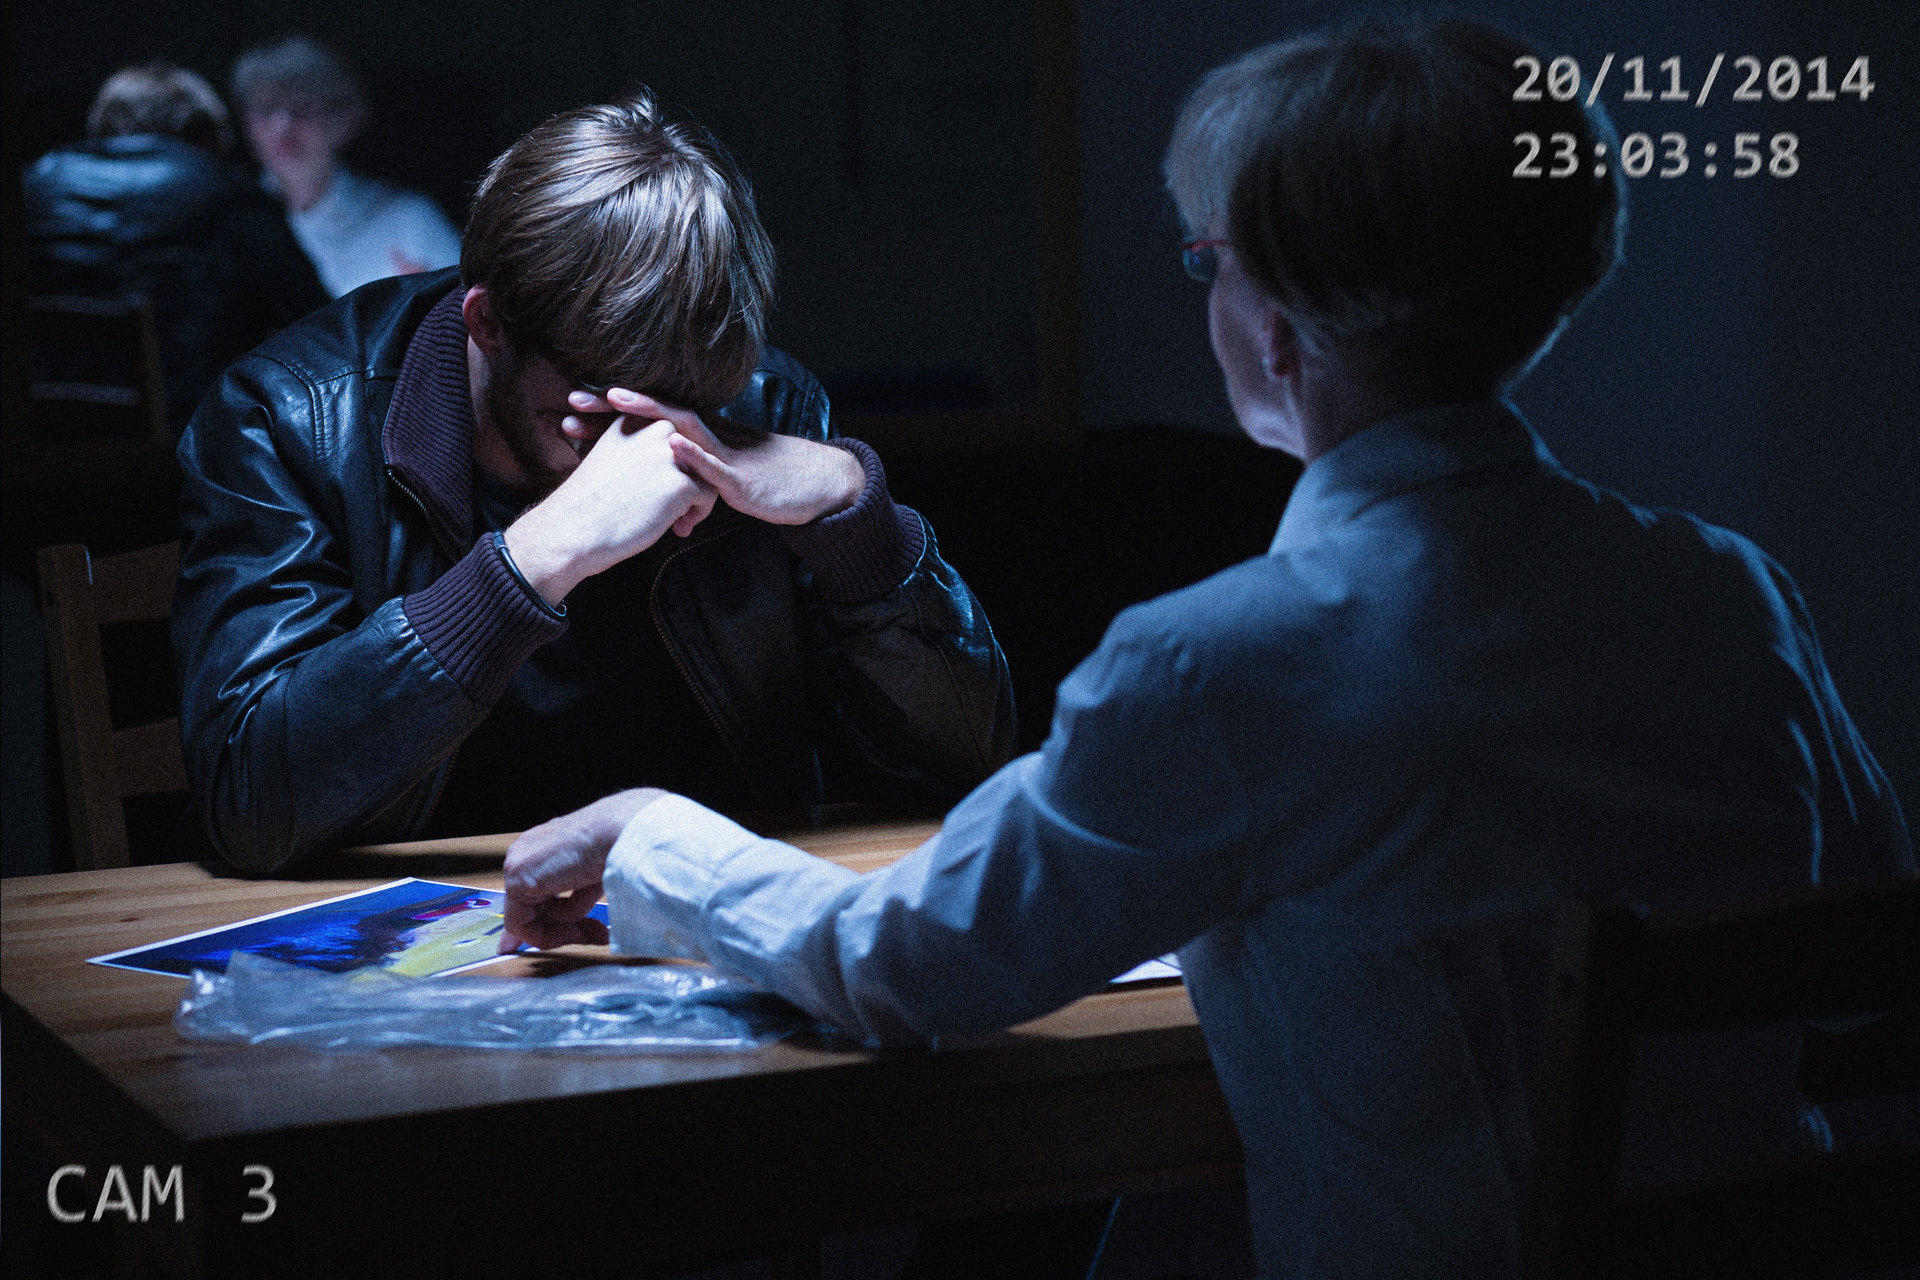 - Cases in which there is a record of the interrogation (ideally a recording or transcript) are most appropriate for The Interrogation Evaluation Clinic.